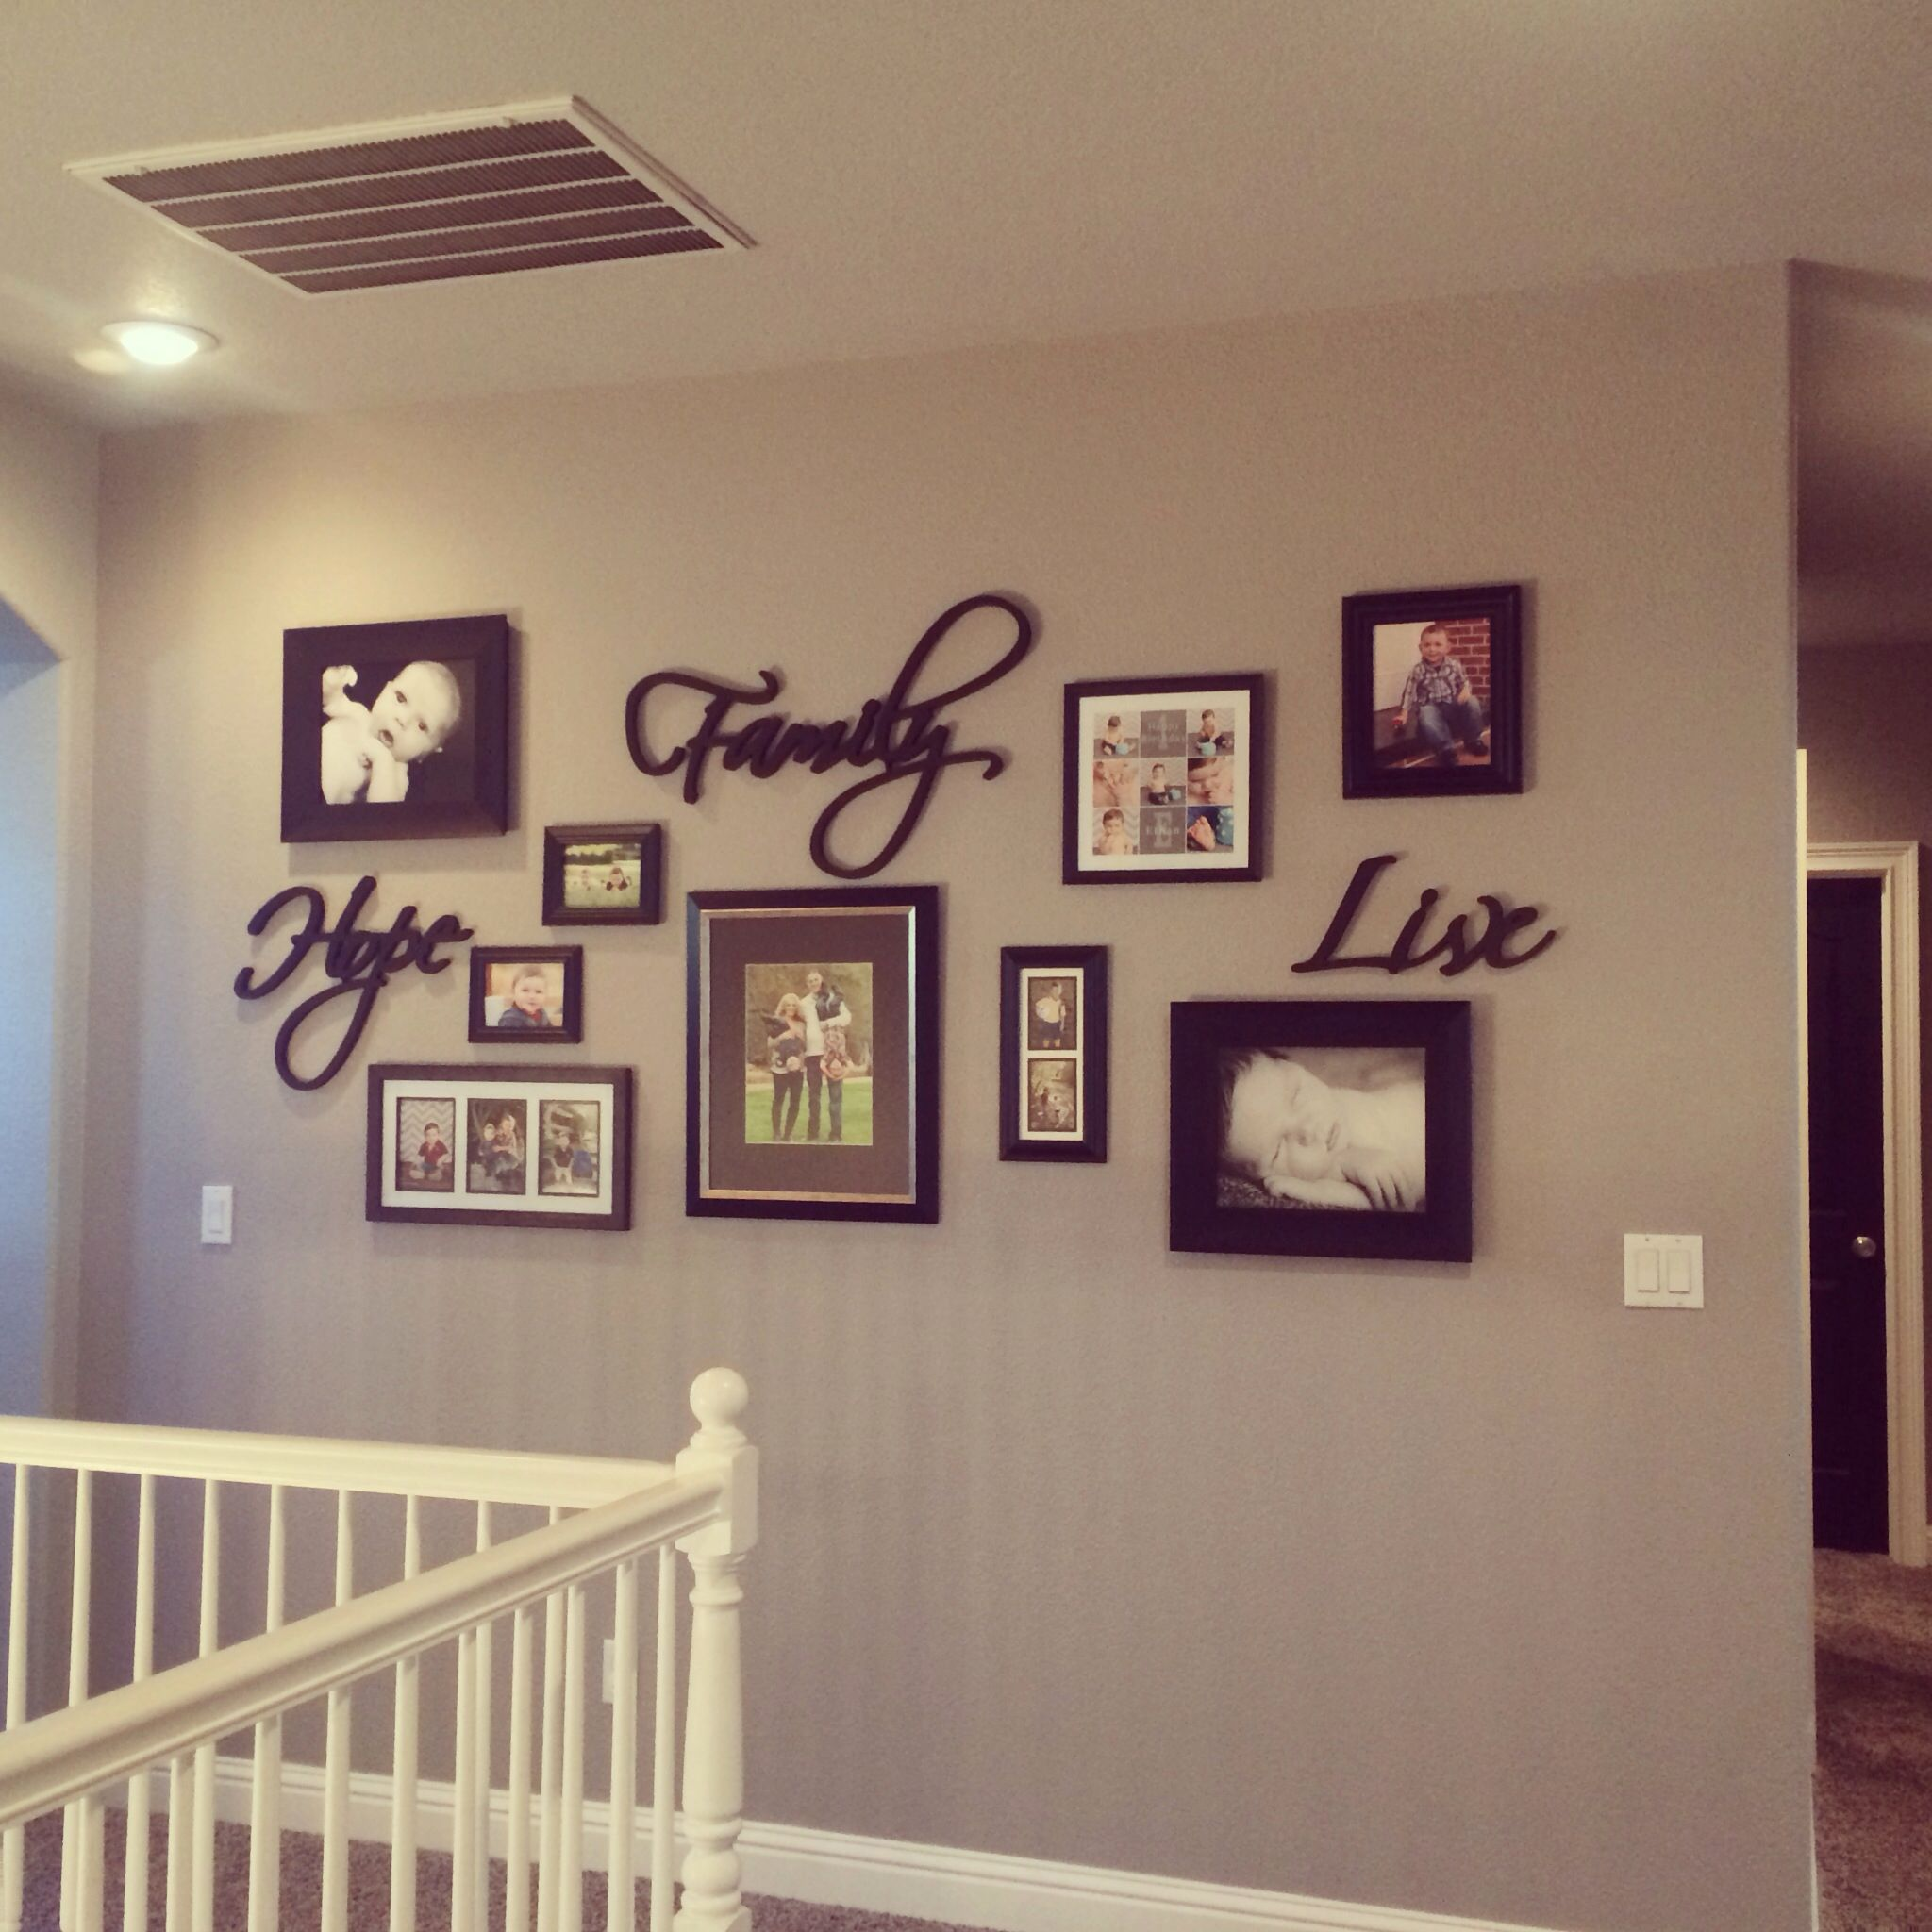 Gallery wall greige walls black doors home decor - Home decorating ideas living room walls ...